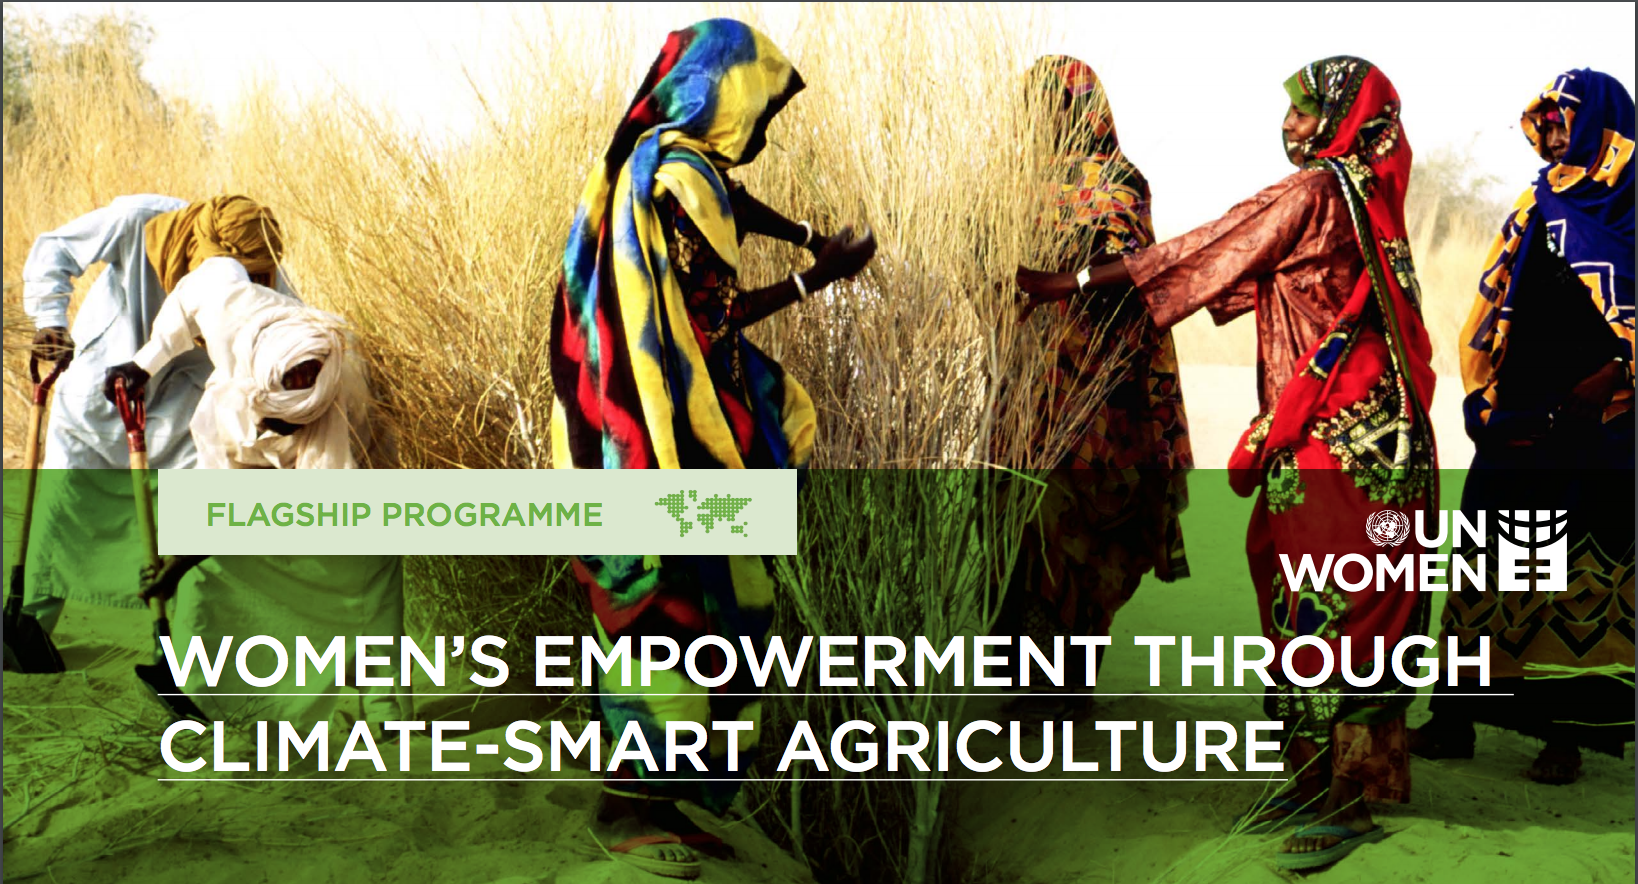 Women's empowerment through climate-resilient agriculture